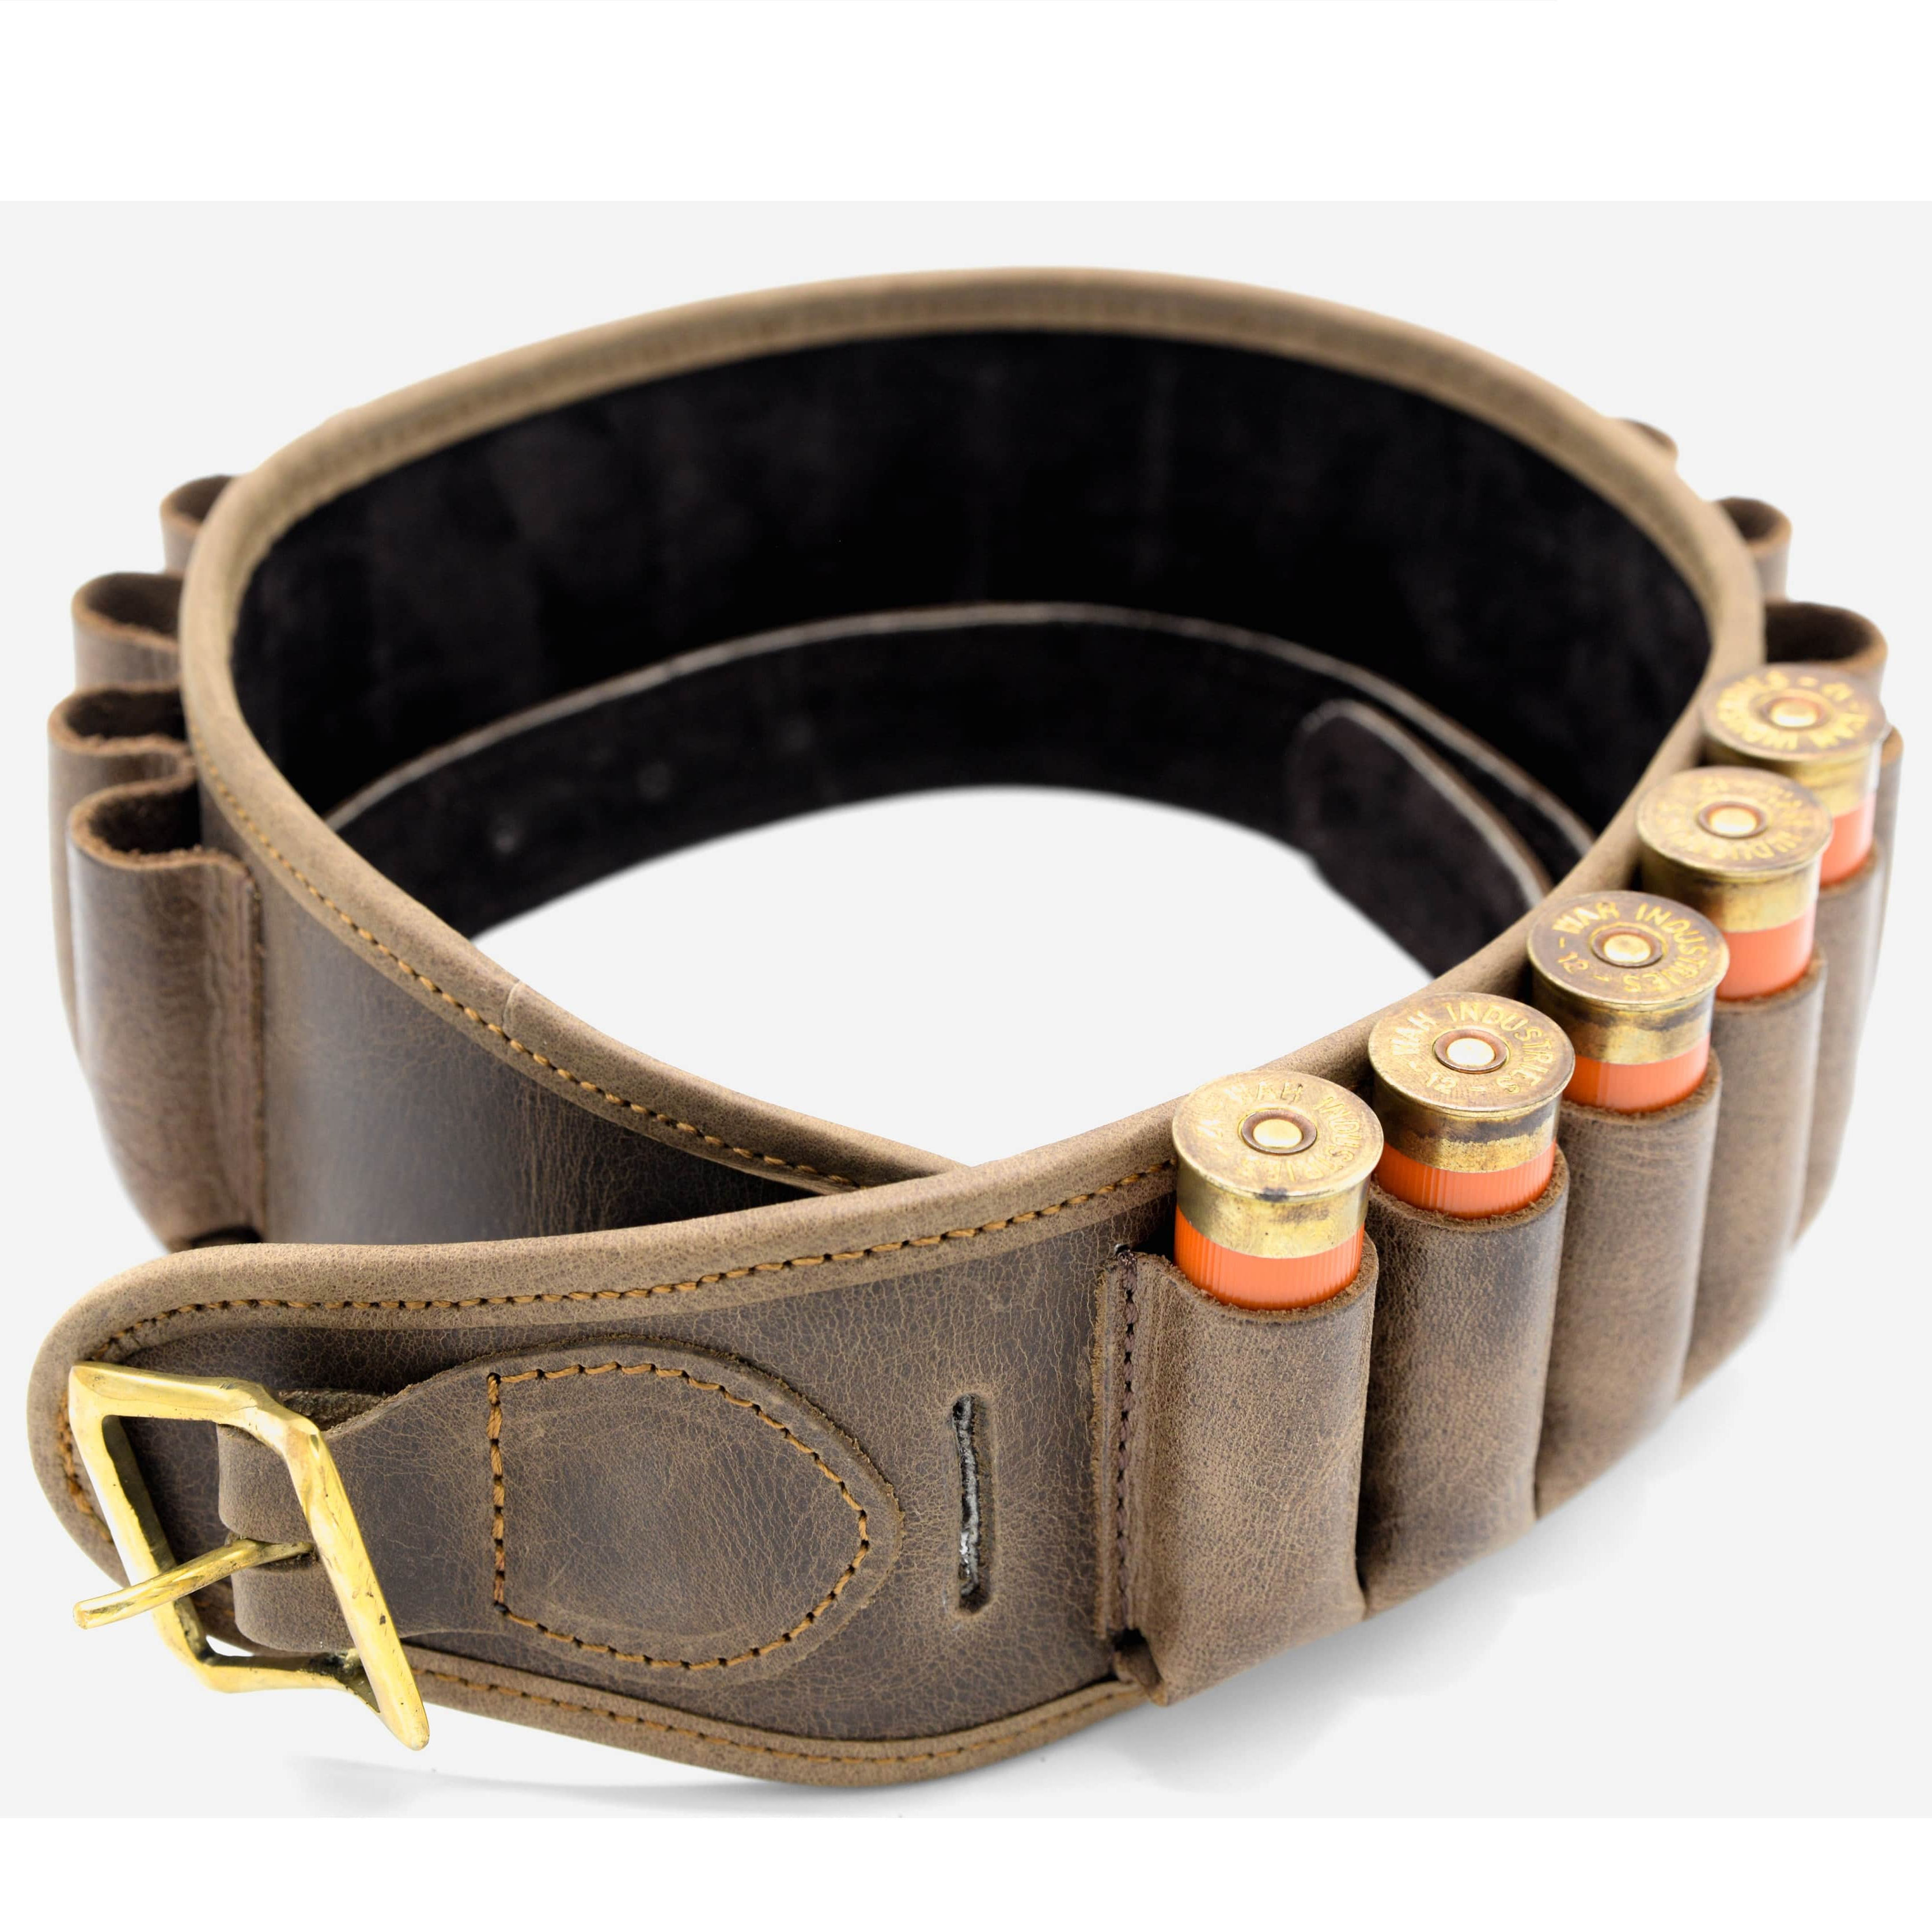 Shotgun Rifle Accessories 12gauge Leather Cartridge Belt ammo carrier belt for Hunting Shooting